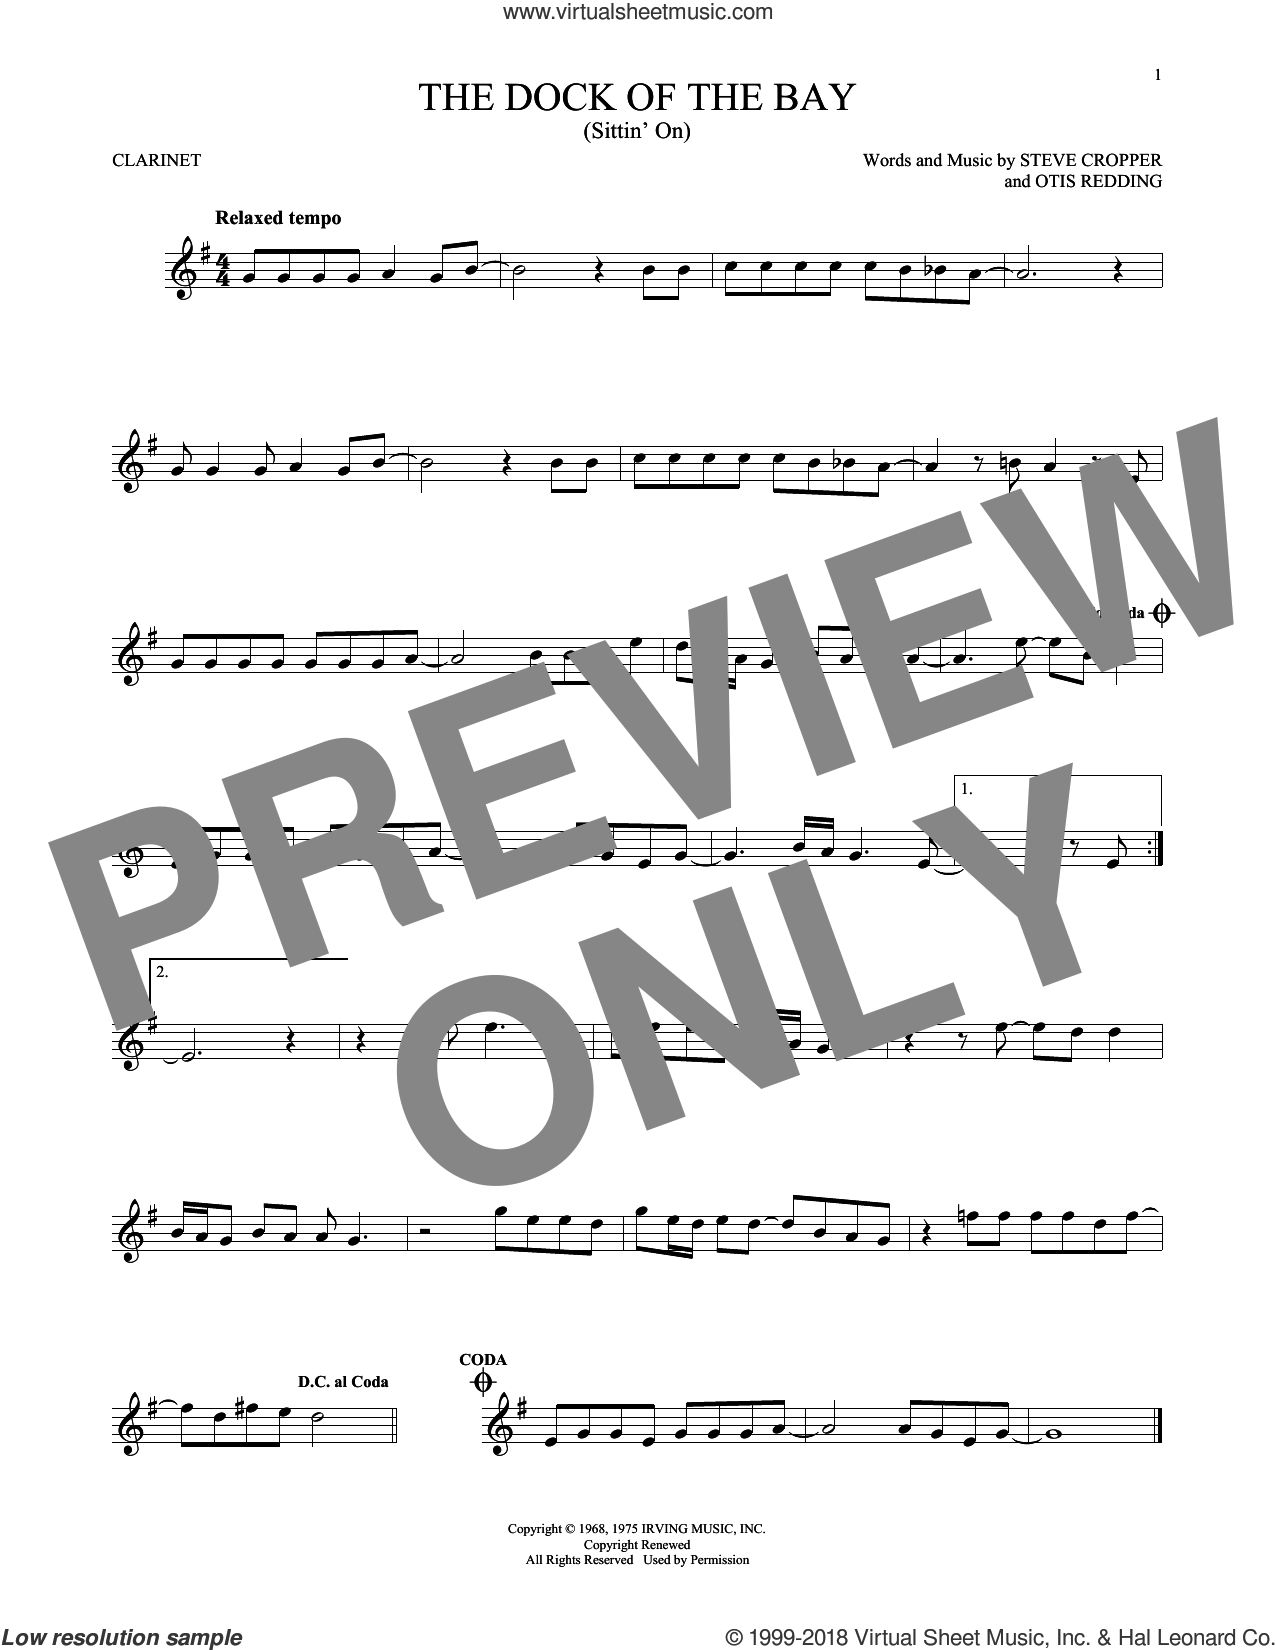 (Sittin' On) The Dock Of The Bay sheet music for clarinet solo by Otis Redding and Steve Cropper, intermediate skill level